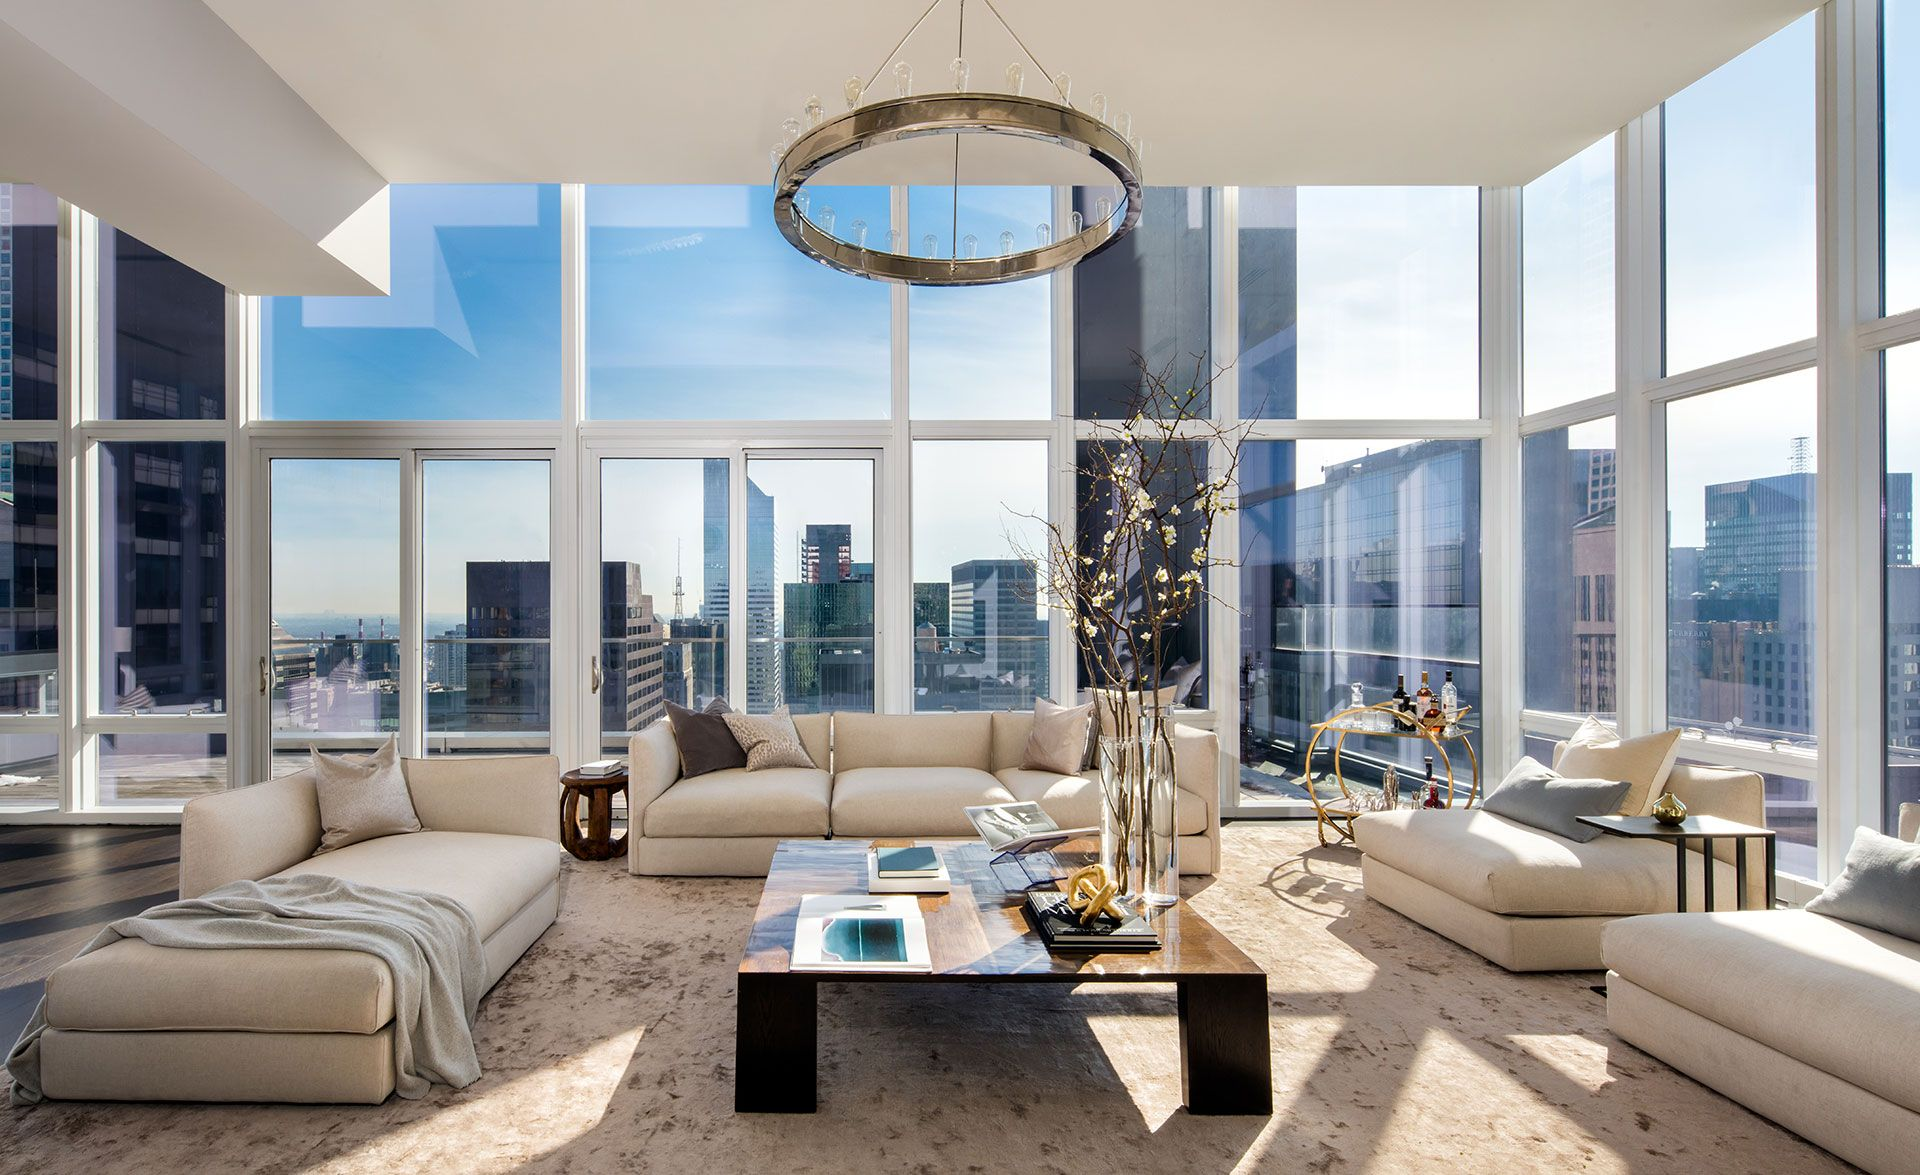 baccarat penthouse new york living room nyc pent house rh pinterest com